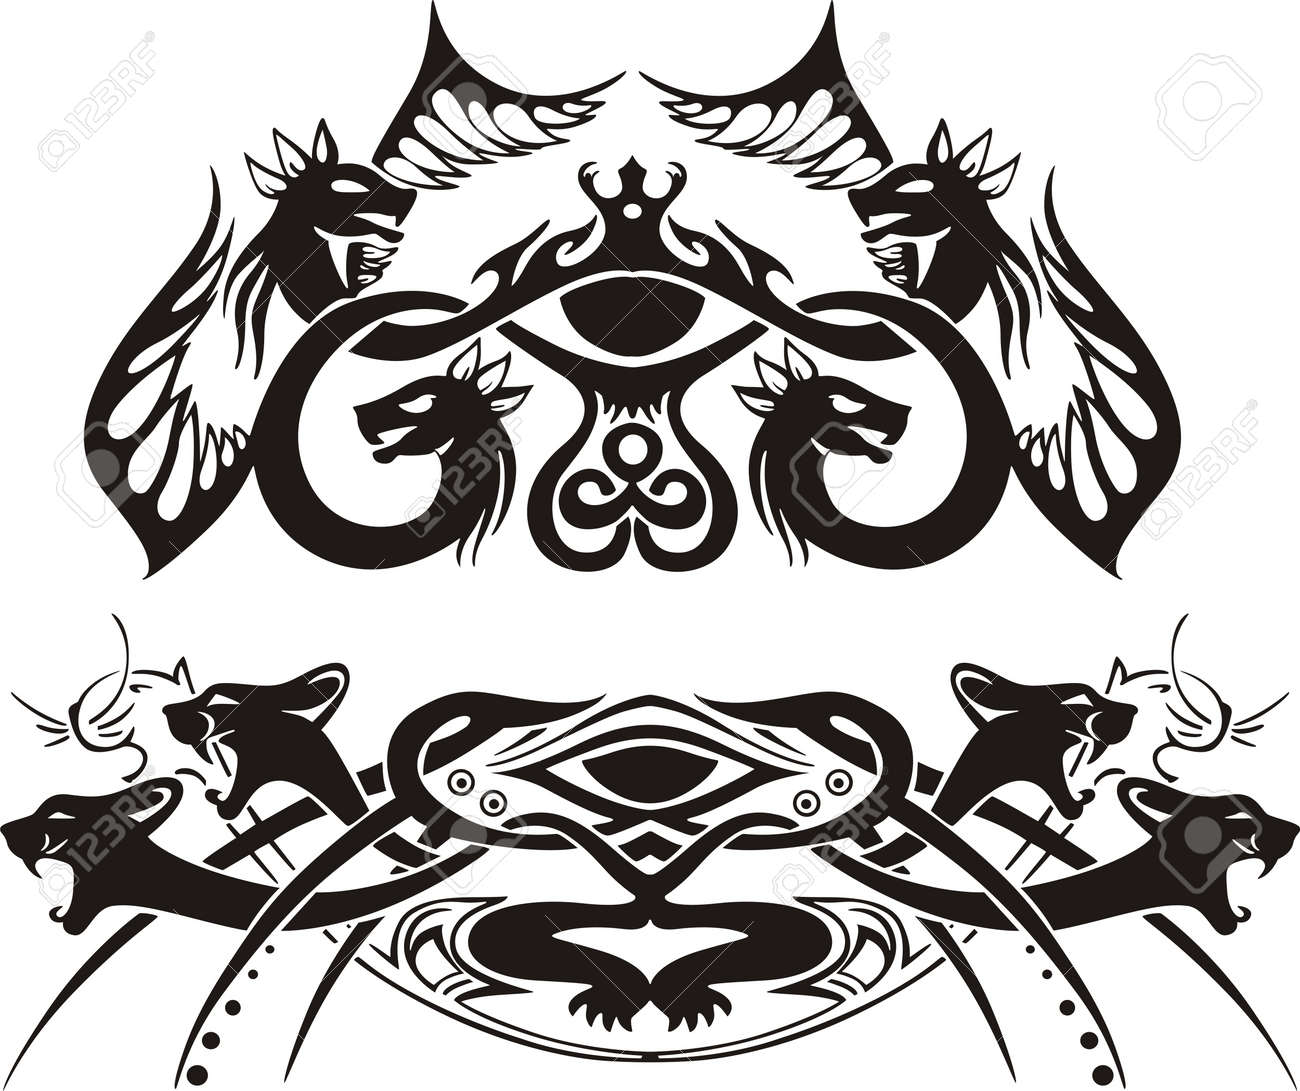 Stylized symmetric vignettes with dragons and cats. Stock Vector - 17331752